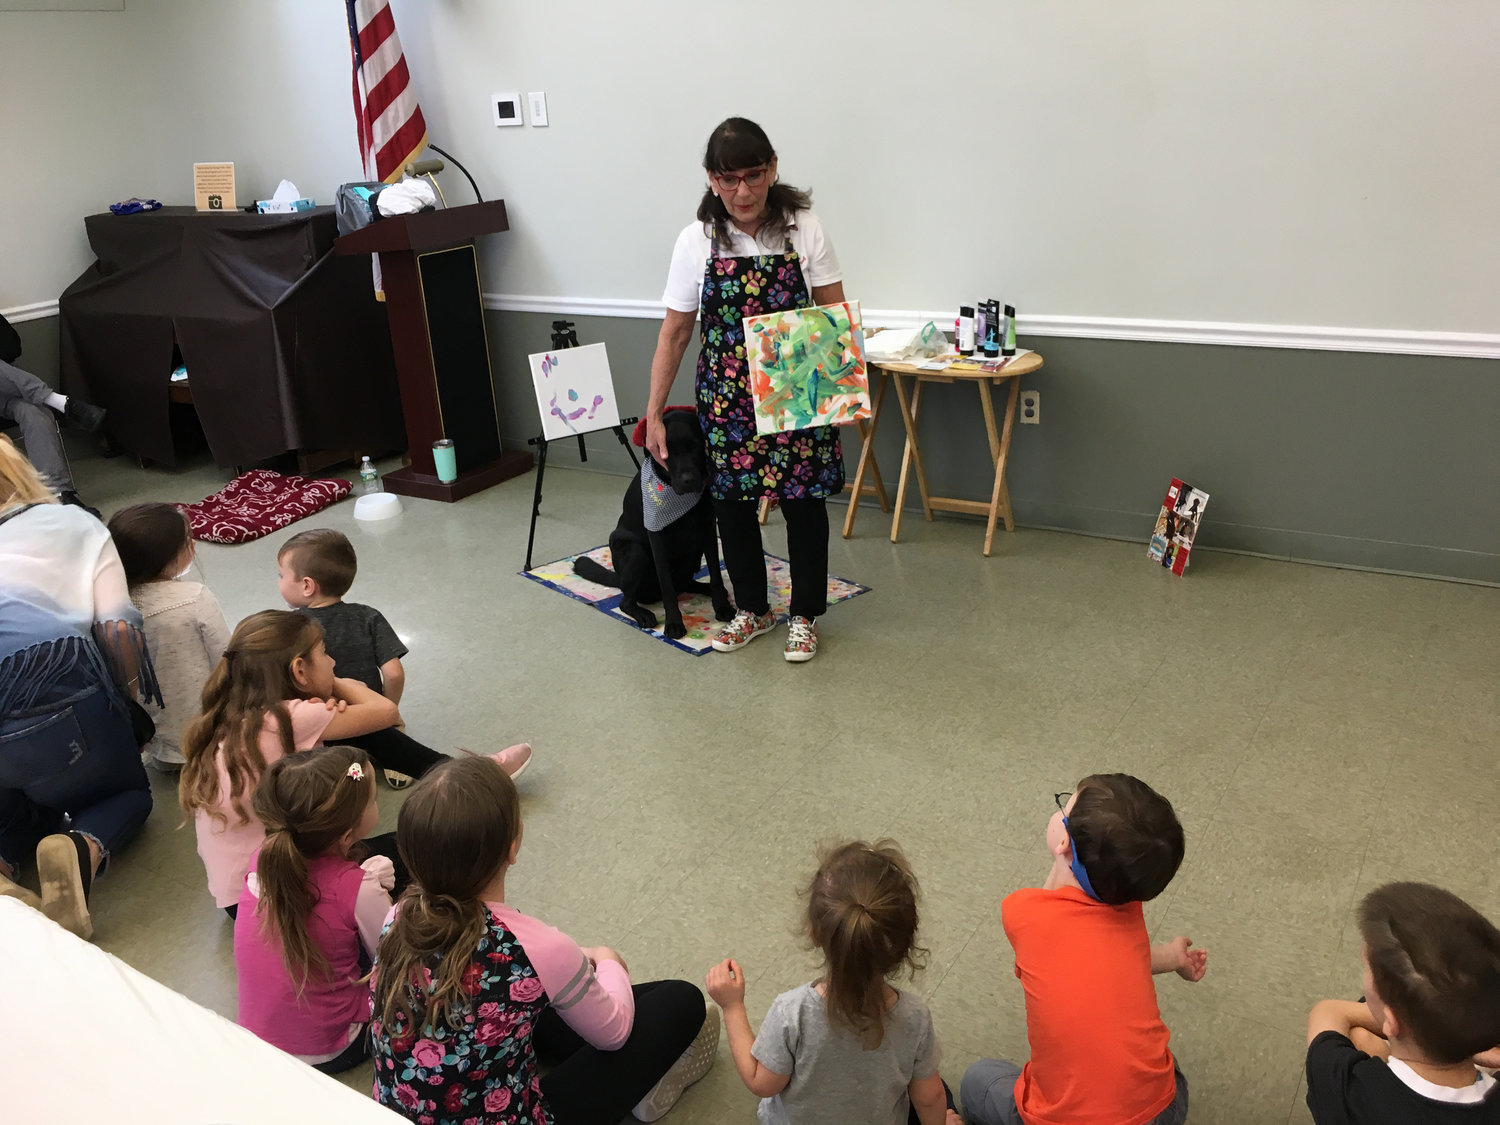 Yvonne Dagger, of Massapequa, and her 6-year-old black Labrador-golden retriever mix, Dagger DogVinci, visited the Wantagh Public Library on April 25 for an hour of painting.